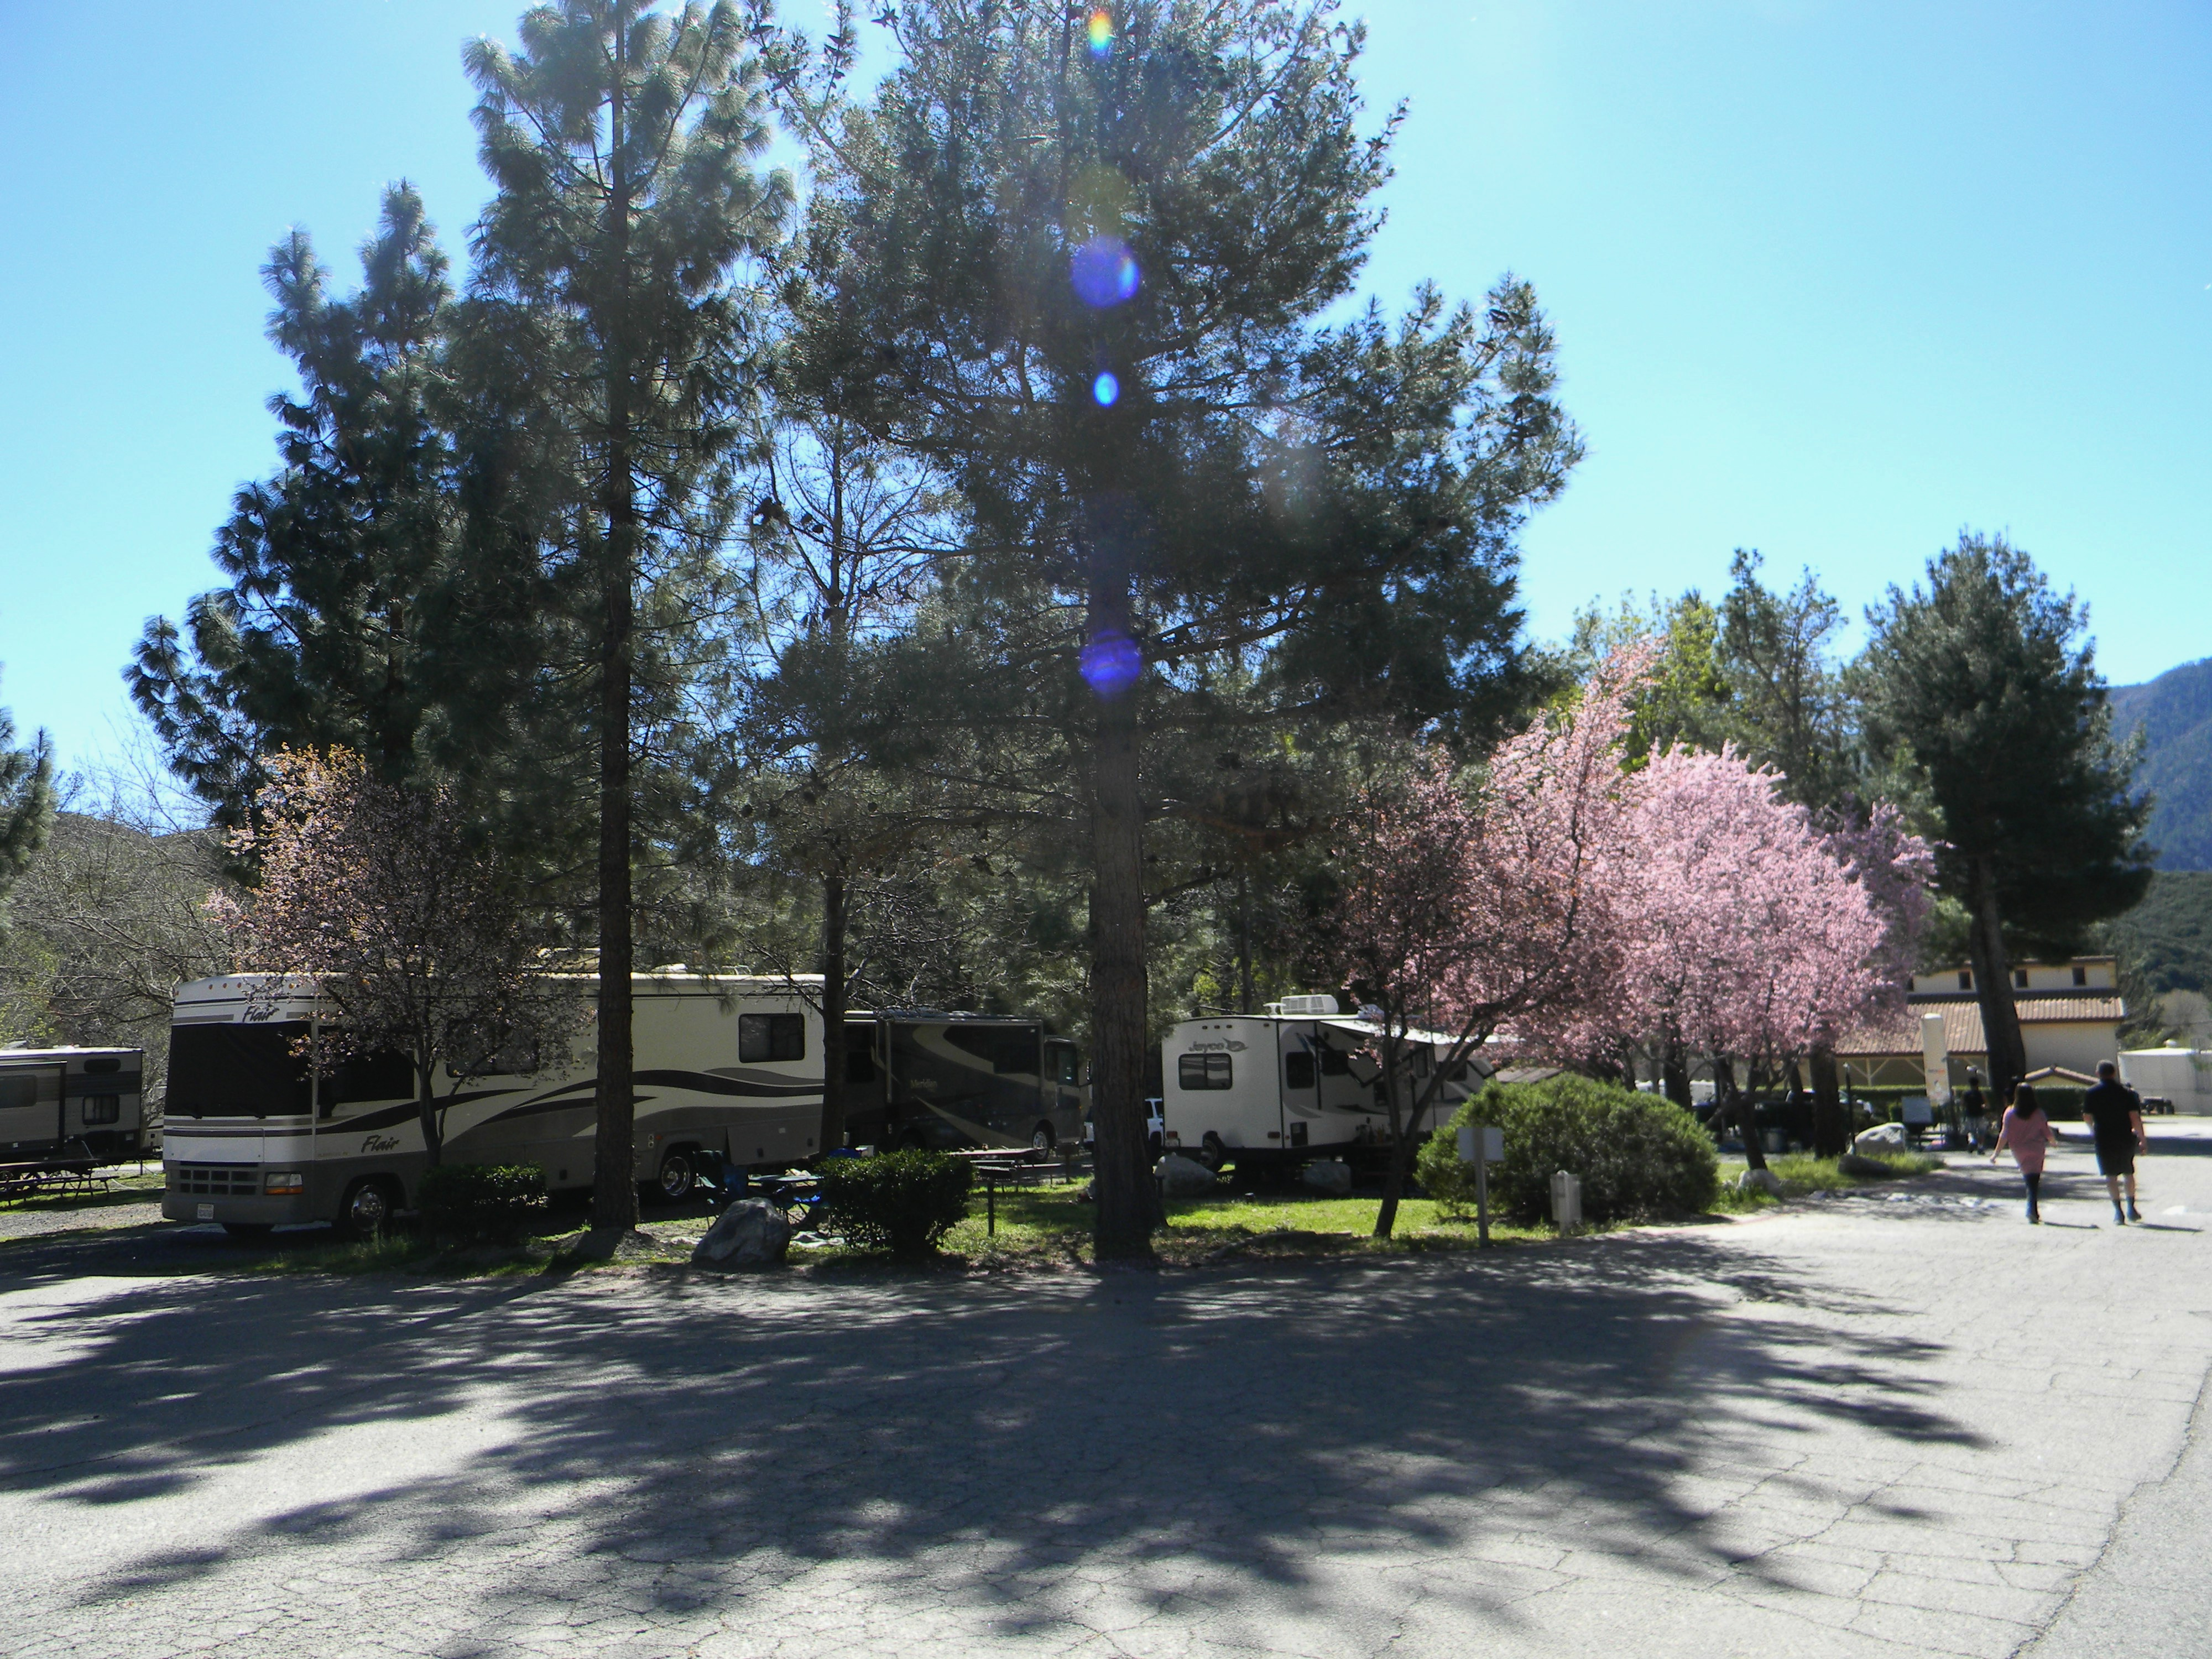 RV's under cherry blossom trees